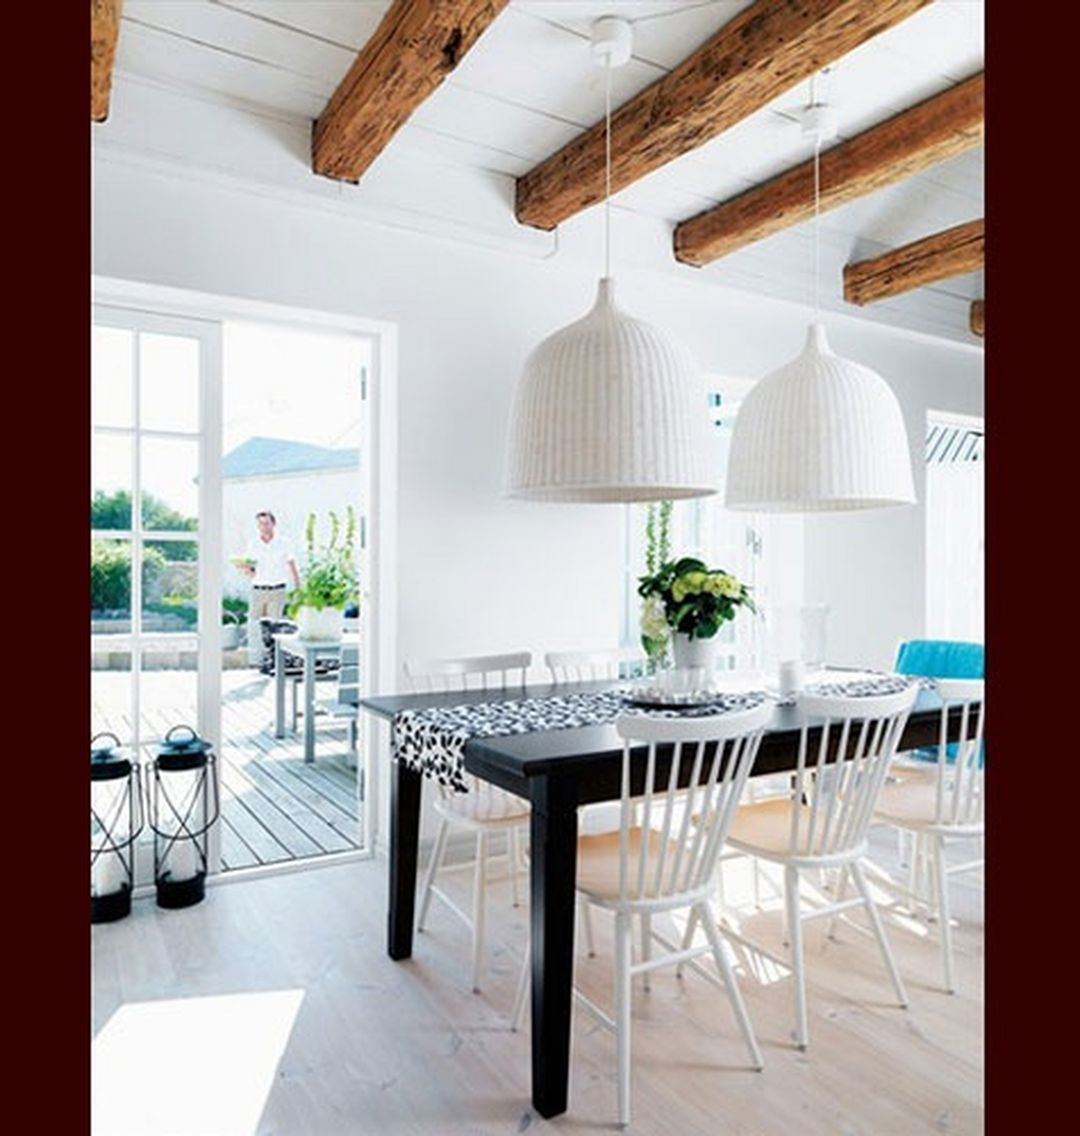 25 Simple Awesome White Wood Beams Ceiling Ideas For Home Or